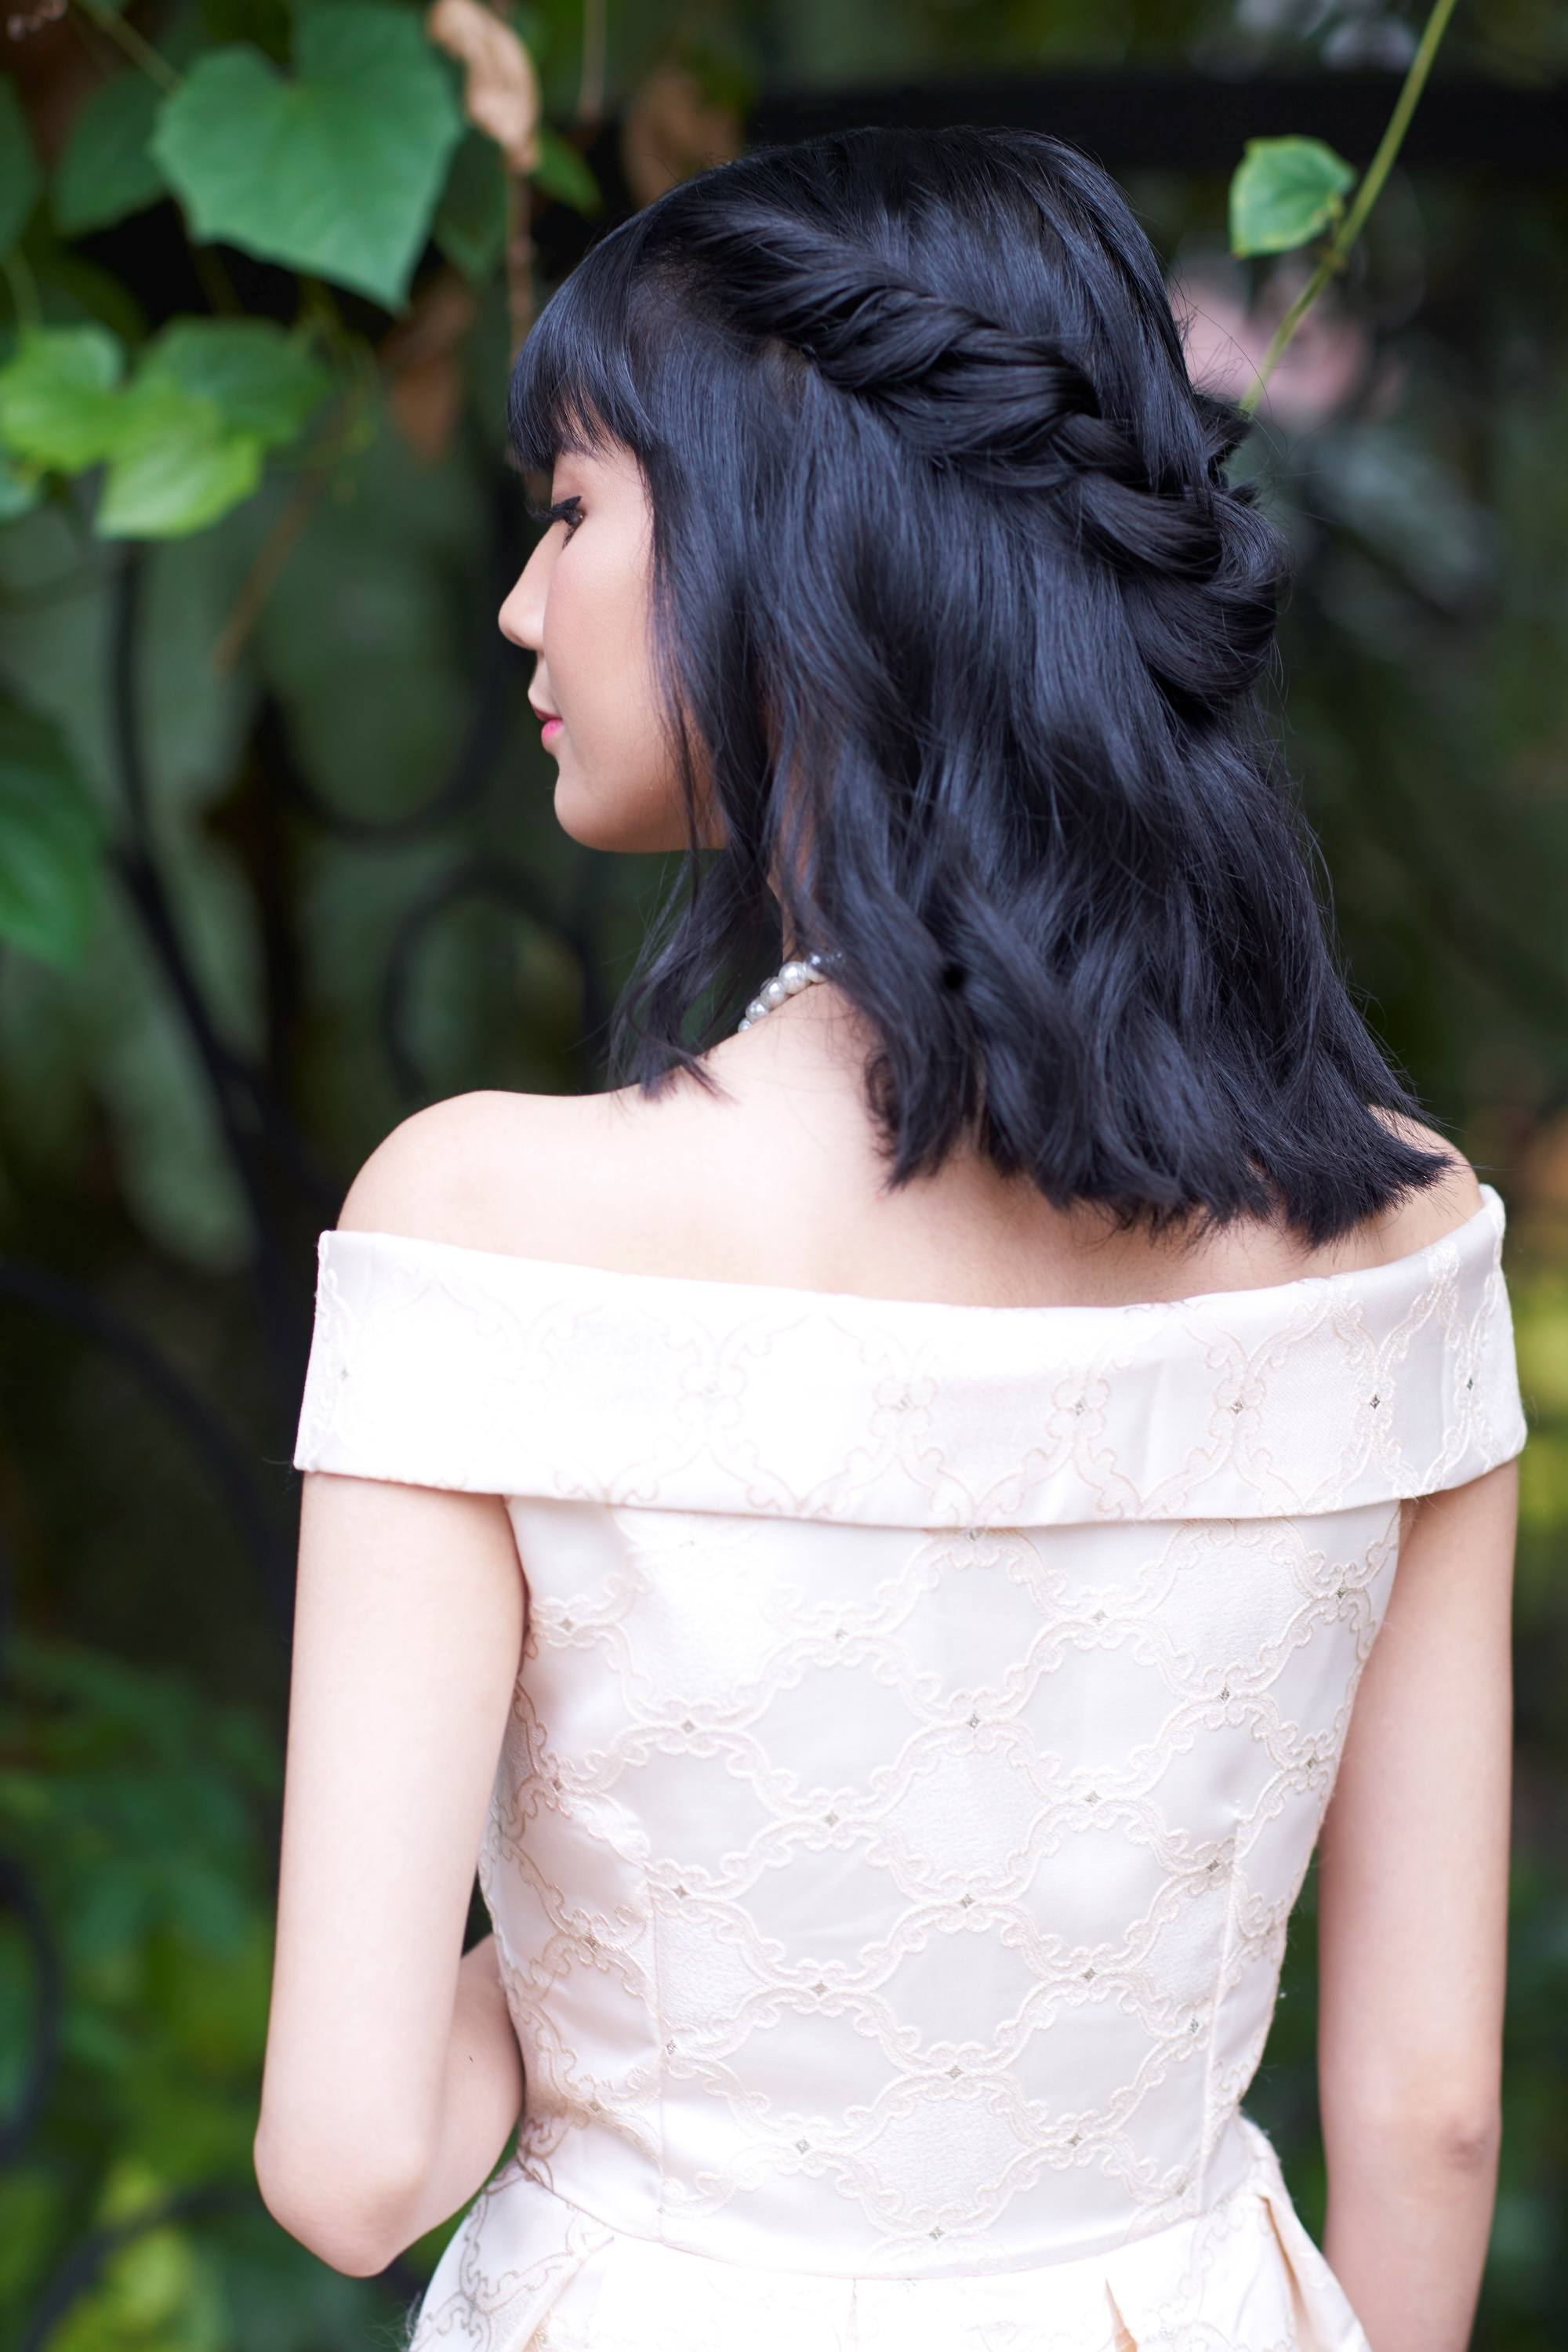 Graduation hairstyles: Back shot of an Asian woman with twisted crown braid half updo